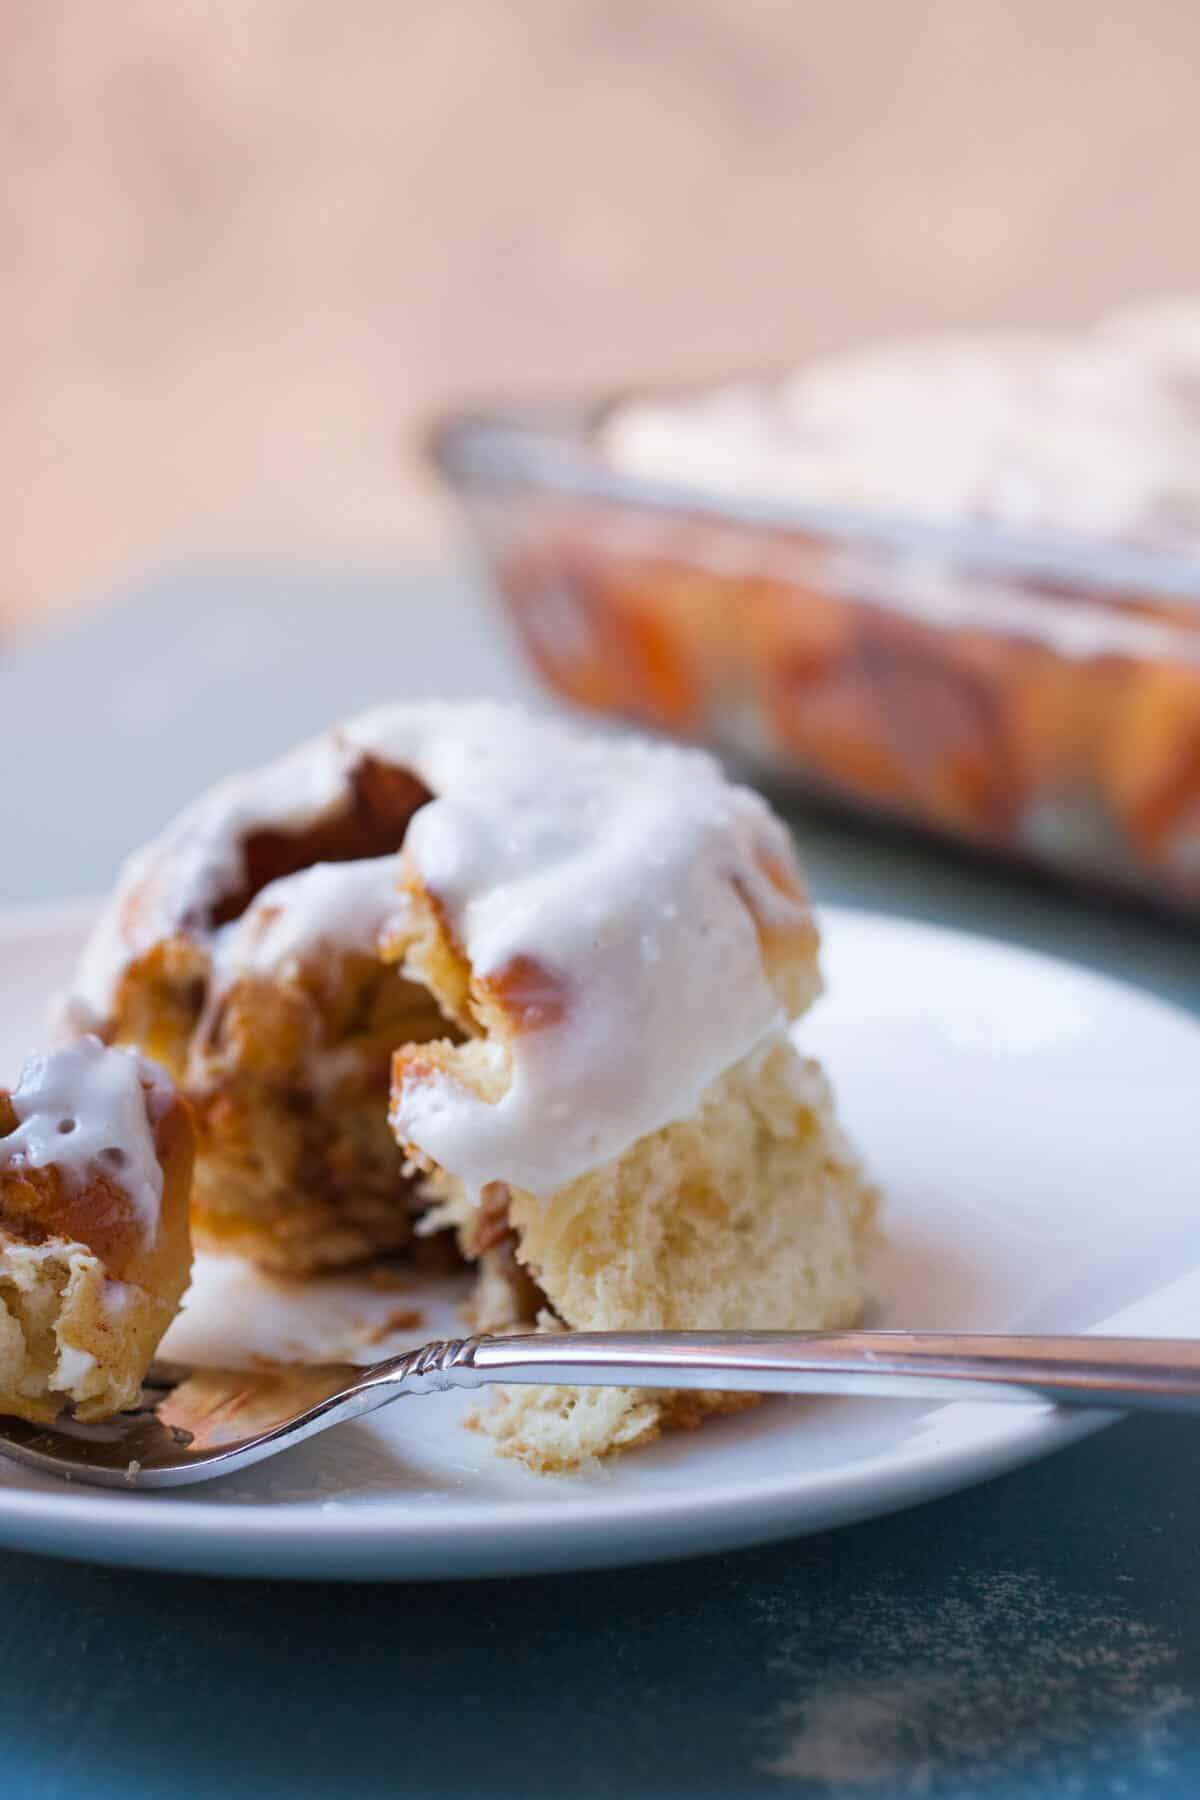 Overnight Cinnamon Rolls: These are one of my favorite slow food breakfasts. Sure, they take time to make, but the results are one of the best cinnamon rolls you'll eat. Enjoy.   macheesmo.com